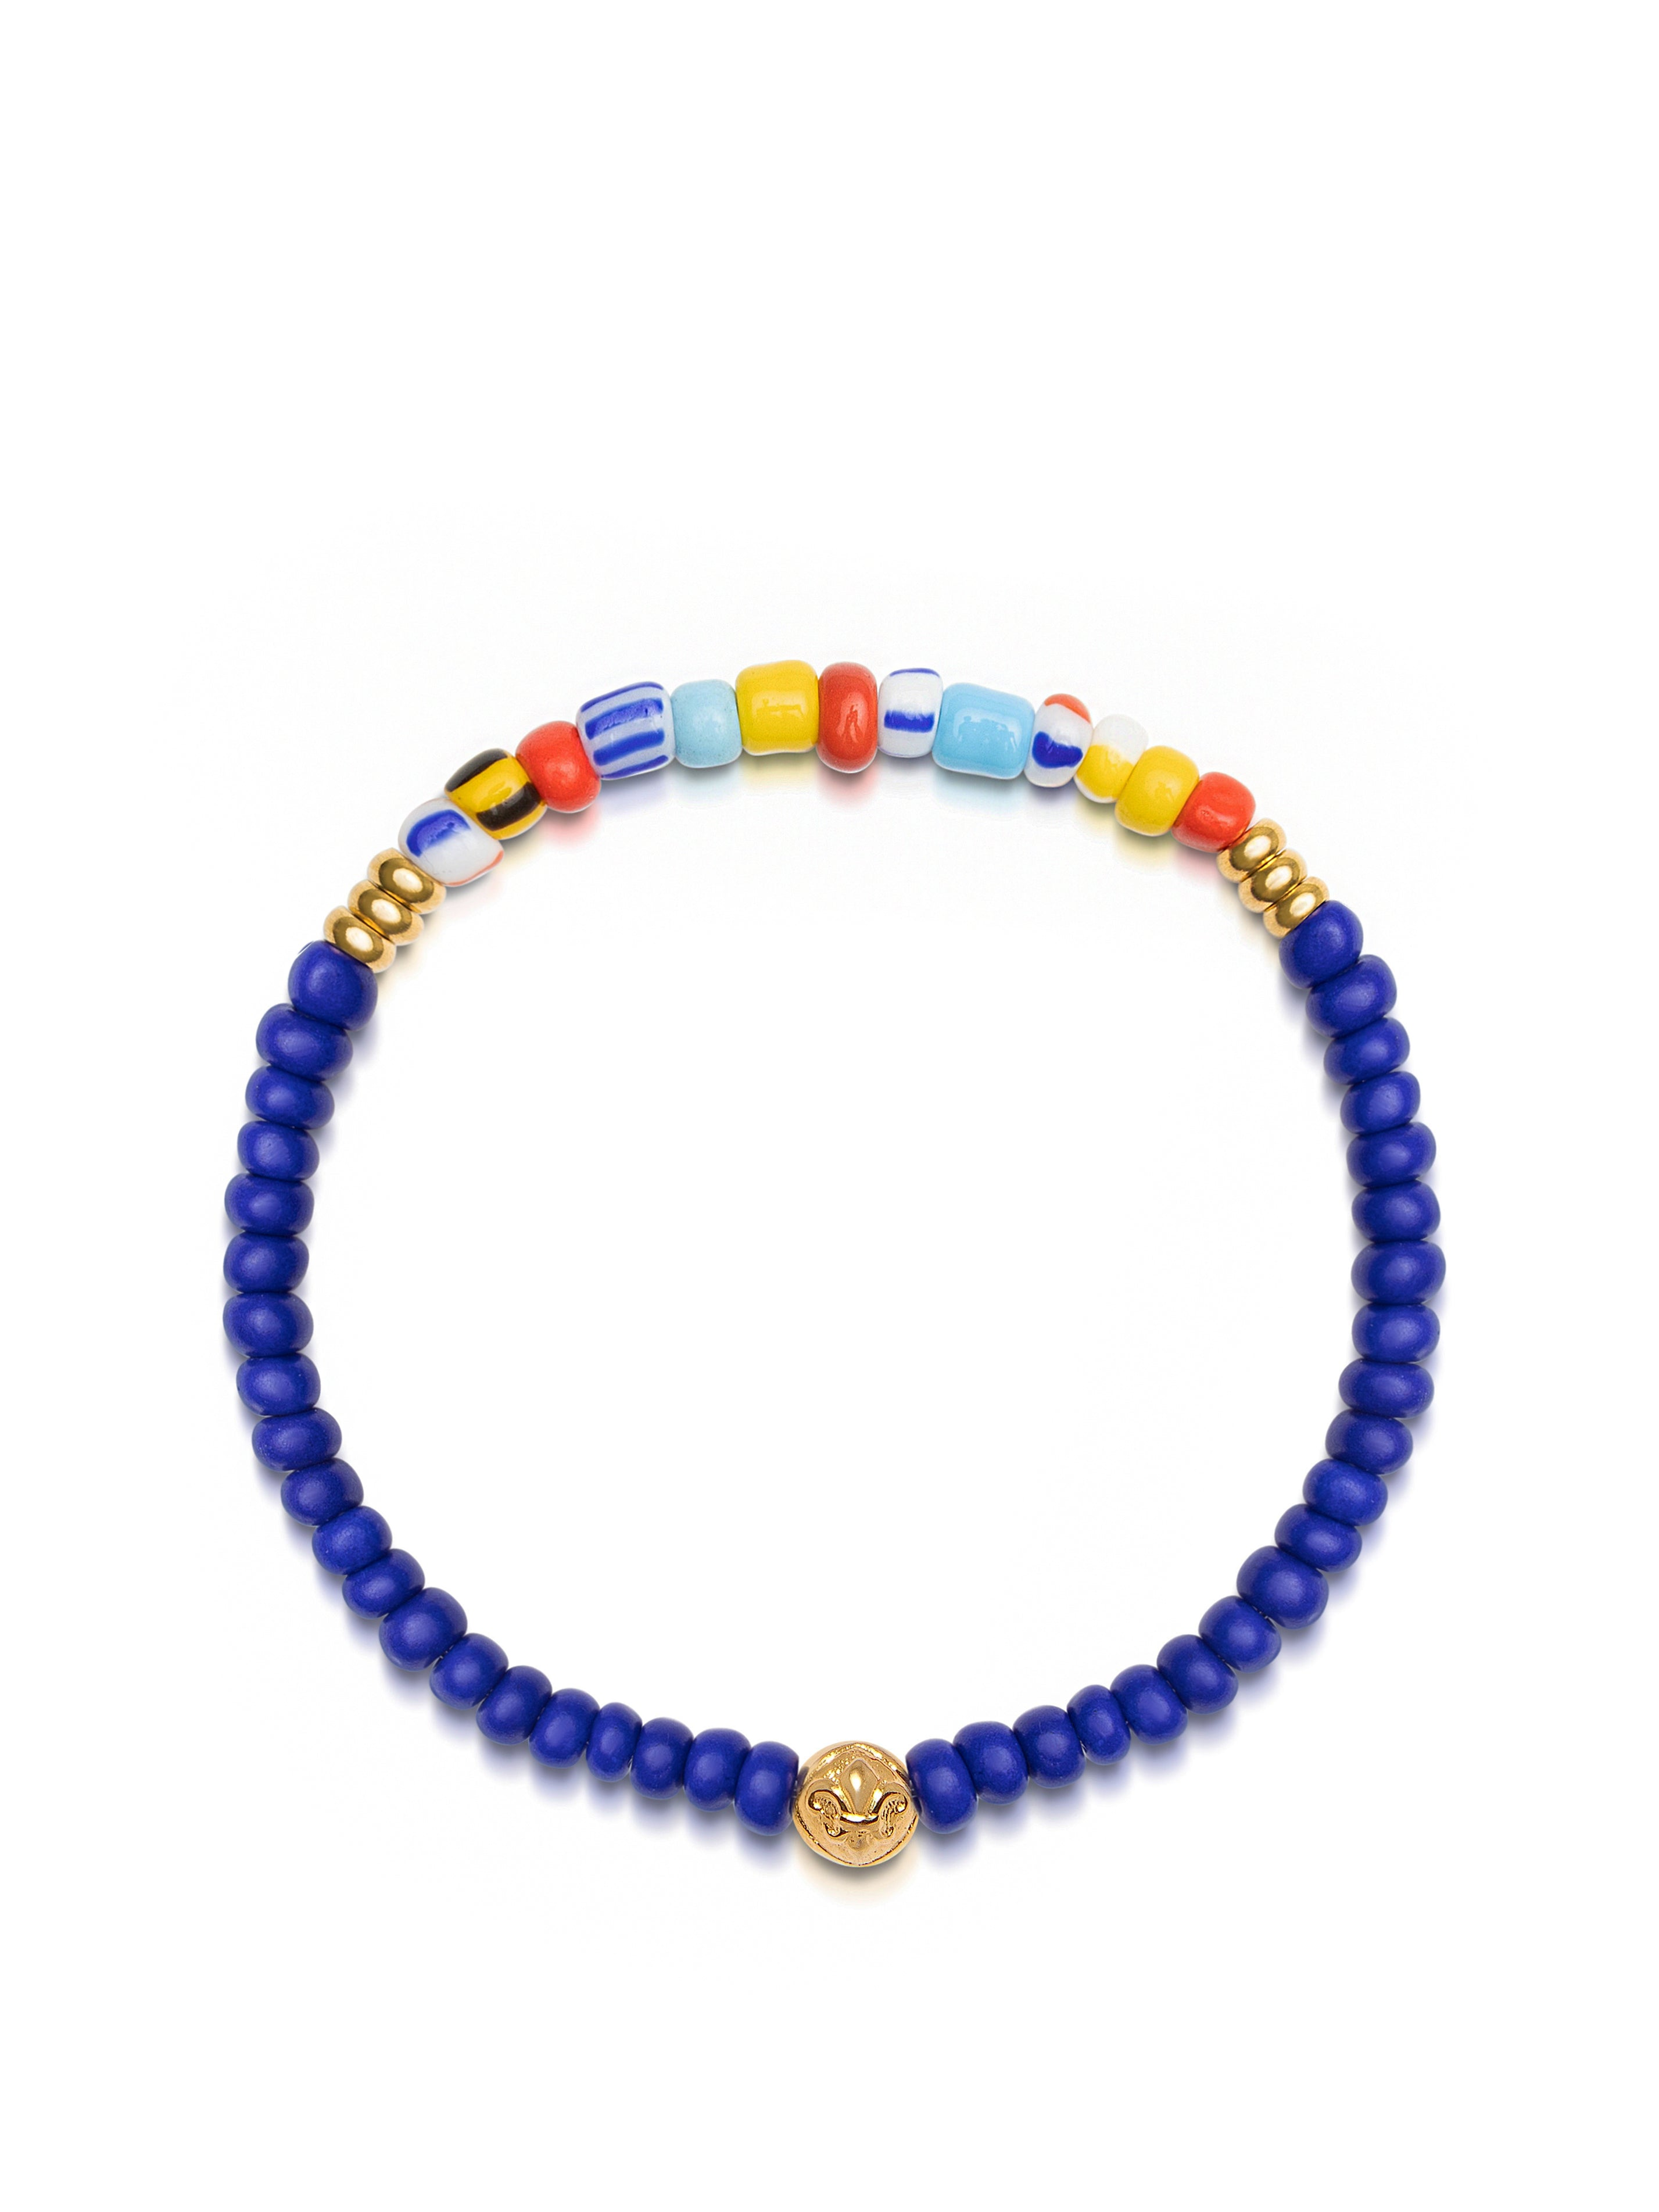 Wristband with Blue Lapis and Colorful Vintage Beads